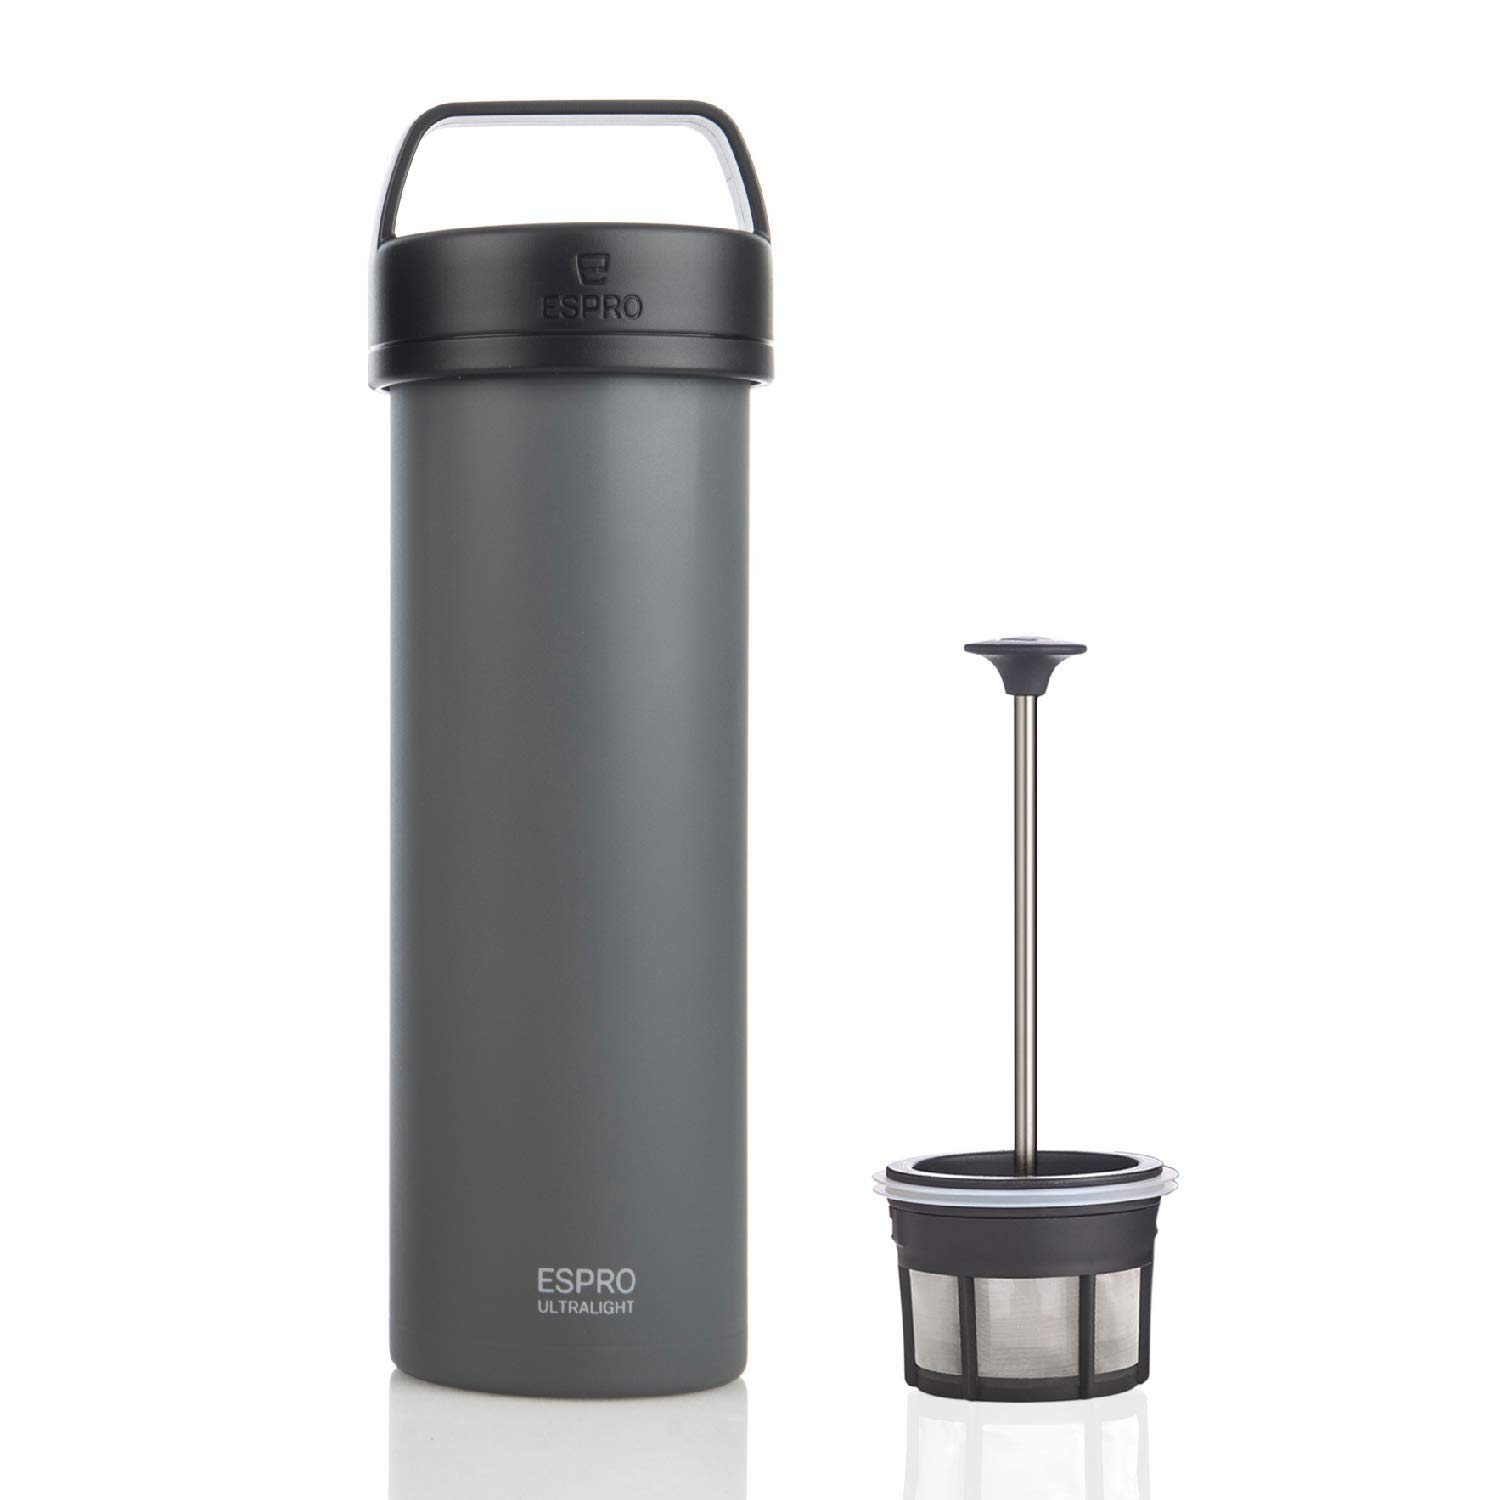 Espro 5116C-BS Ultralight Coffee Press Brushed 16 oz Vacuum Insulated Stainless Steel